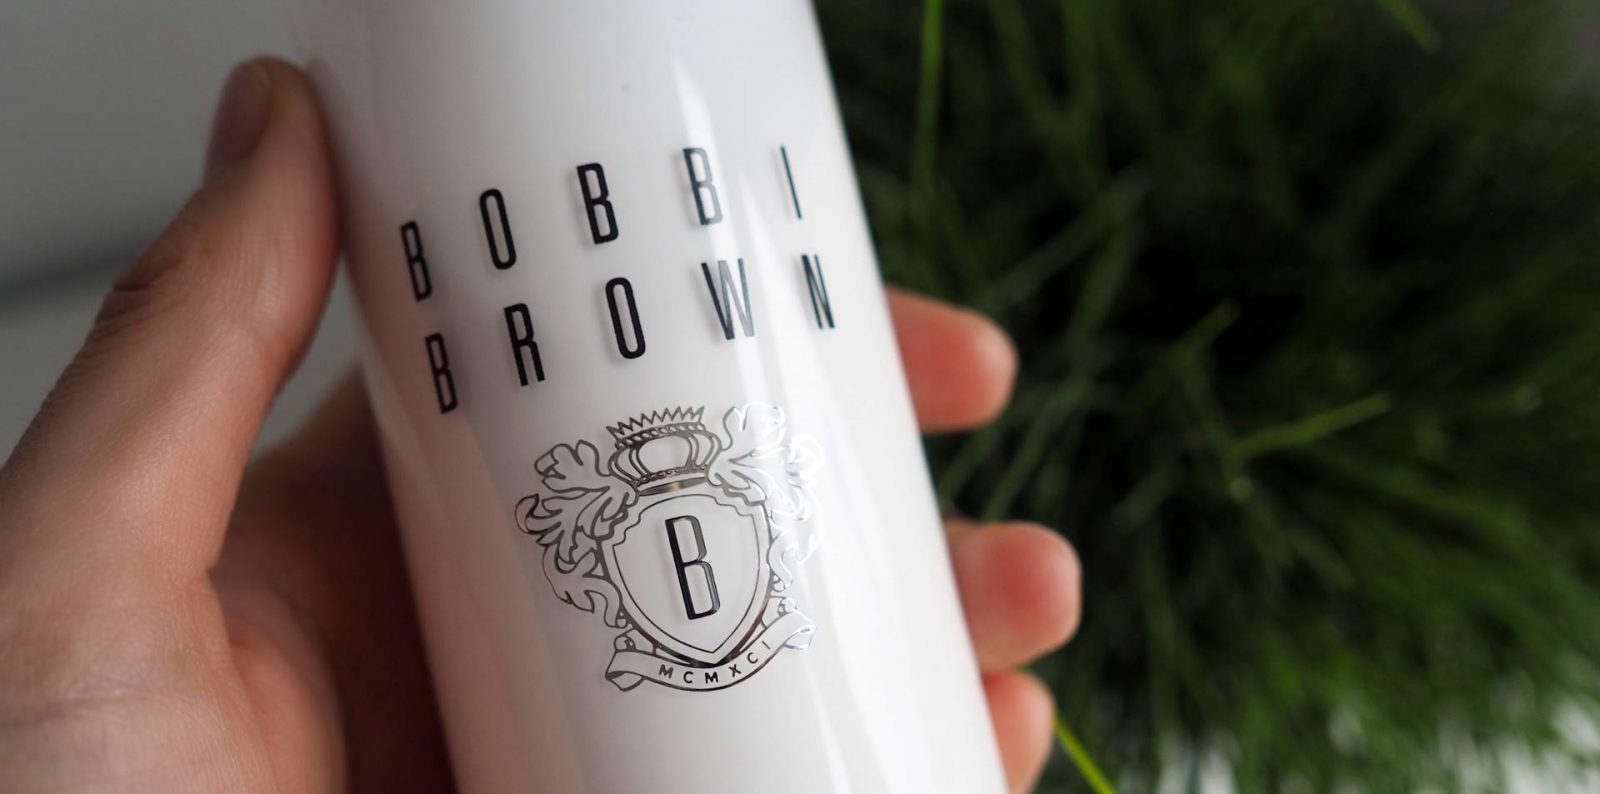 Bobbie Brown Smoothing Cleansing Milk | Megan Taylor